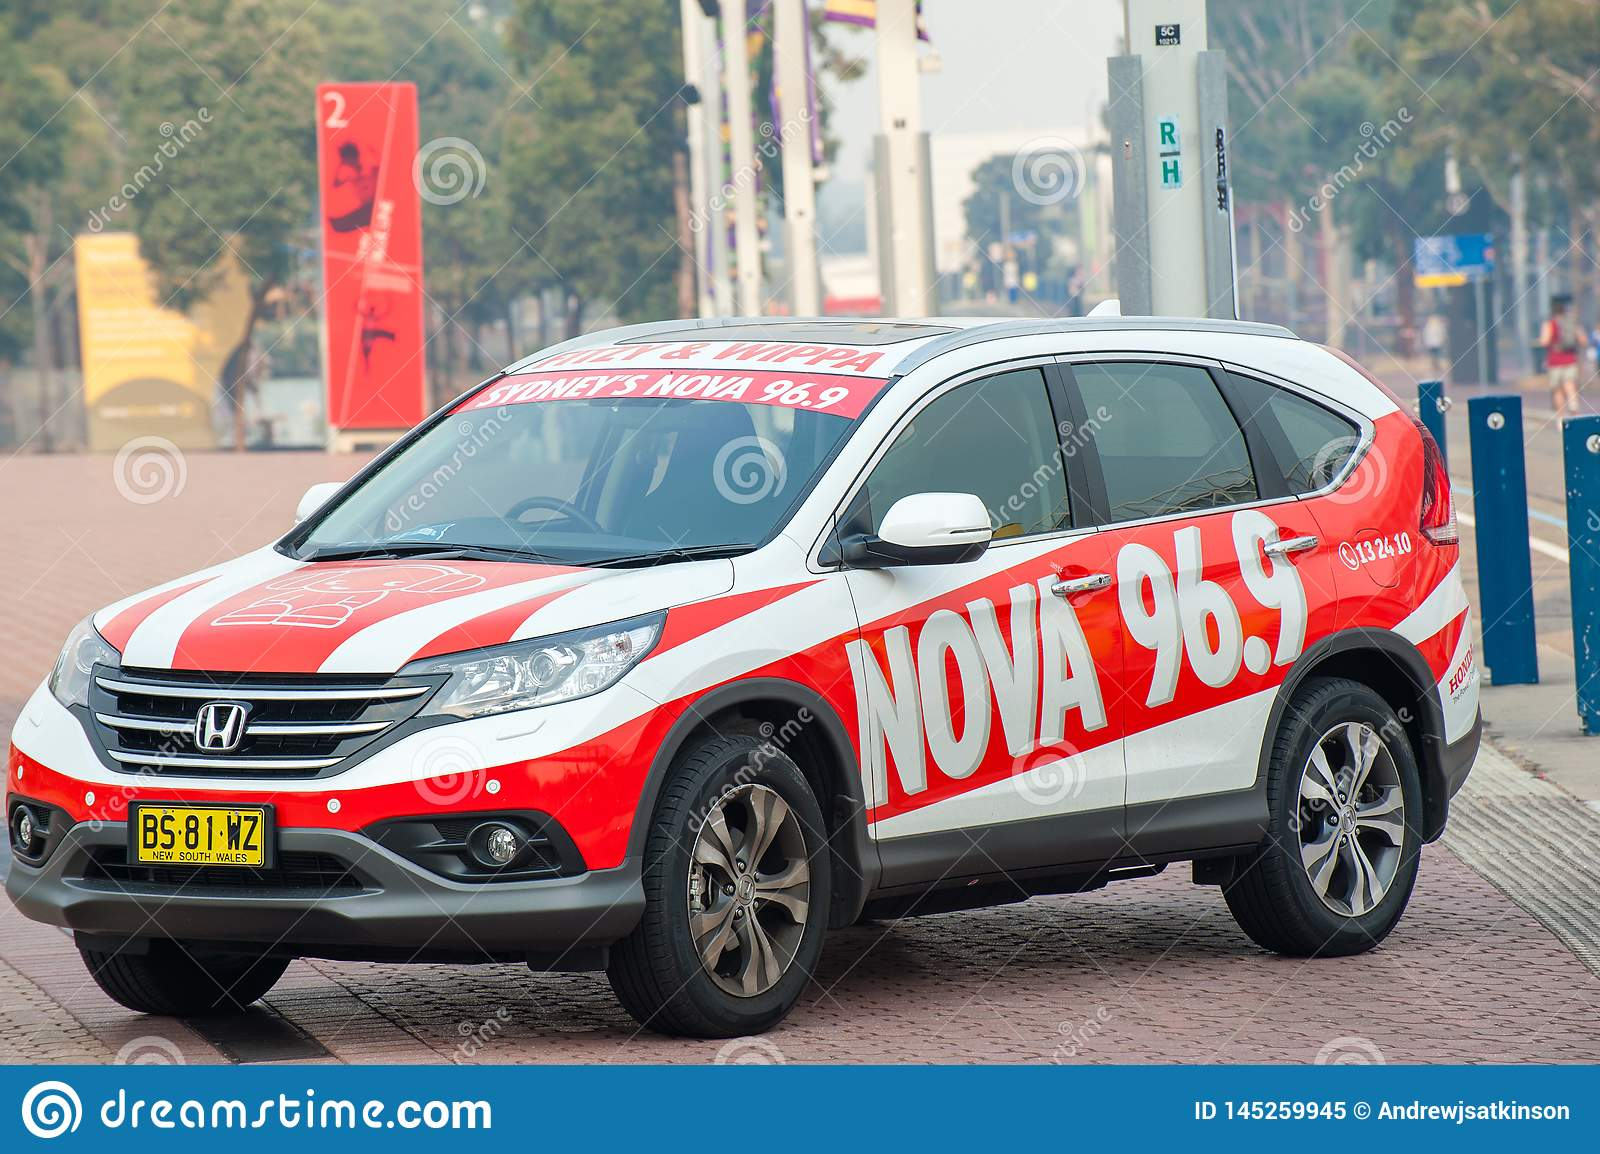 Honda car with signage for a Sydney radio station, Nova 96.9 parked at a fun running event